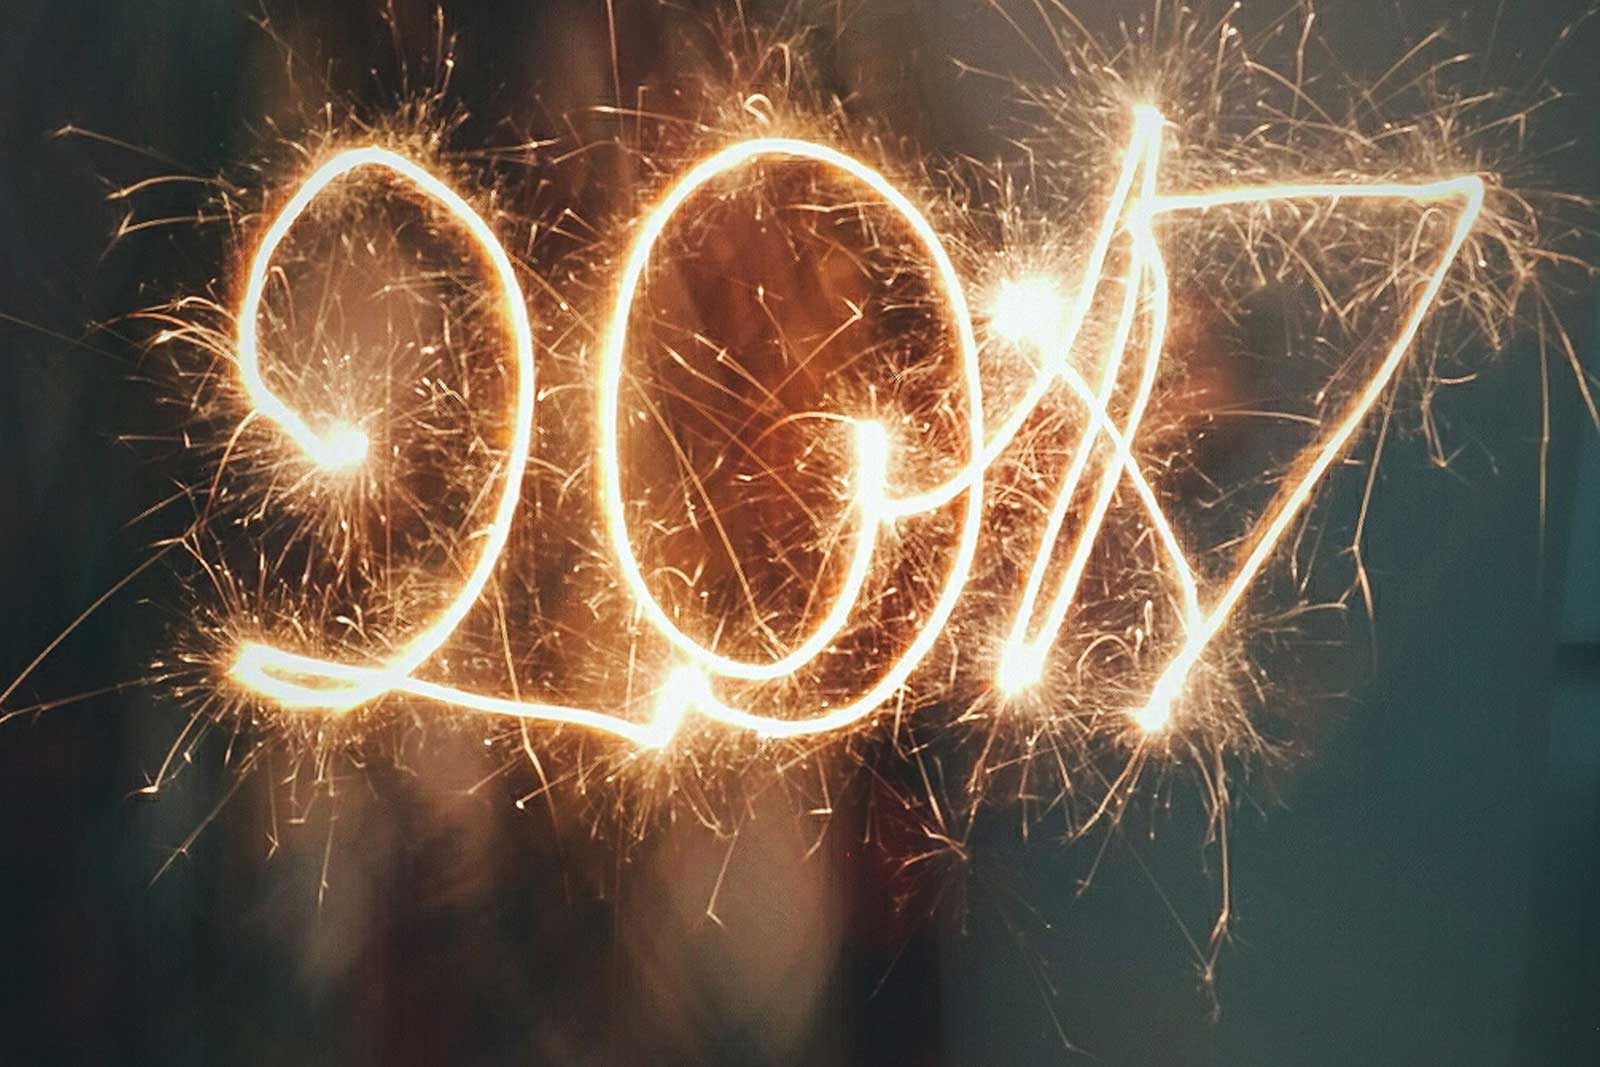 The year 2017 spelled out with sparklers.